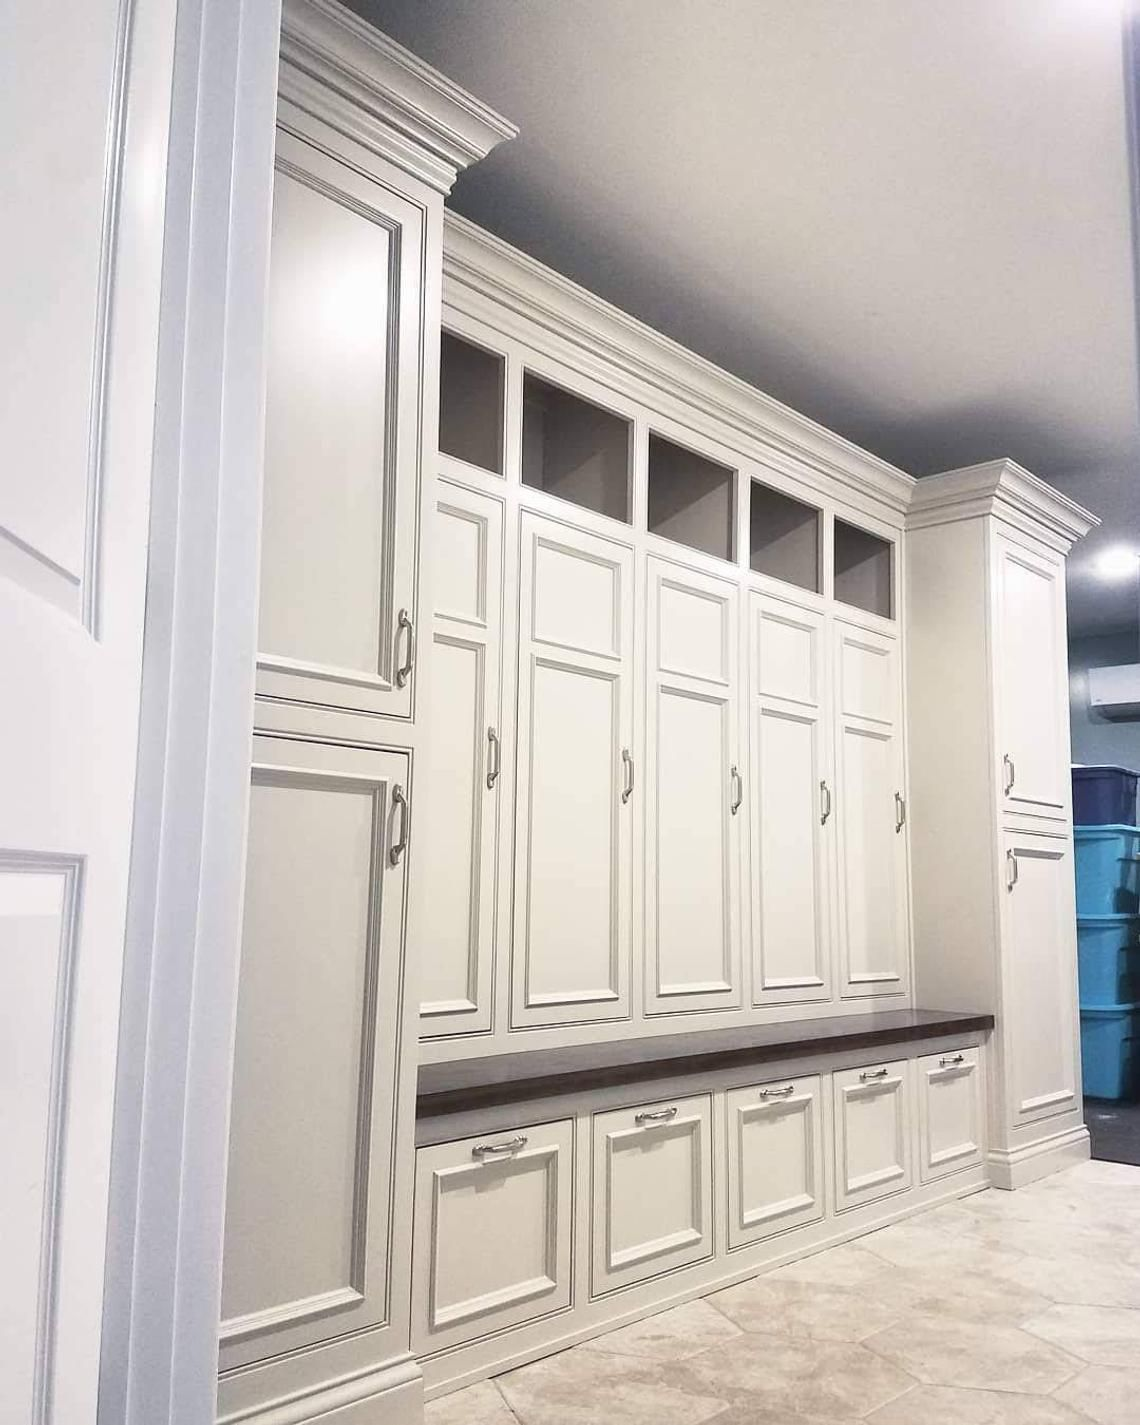 The Georgia Deluxe Mudroom Lockers Bench Storage Furniture Etsy Mudroom Lockers Mud Room Storage Bench With Storage